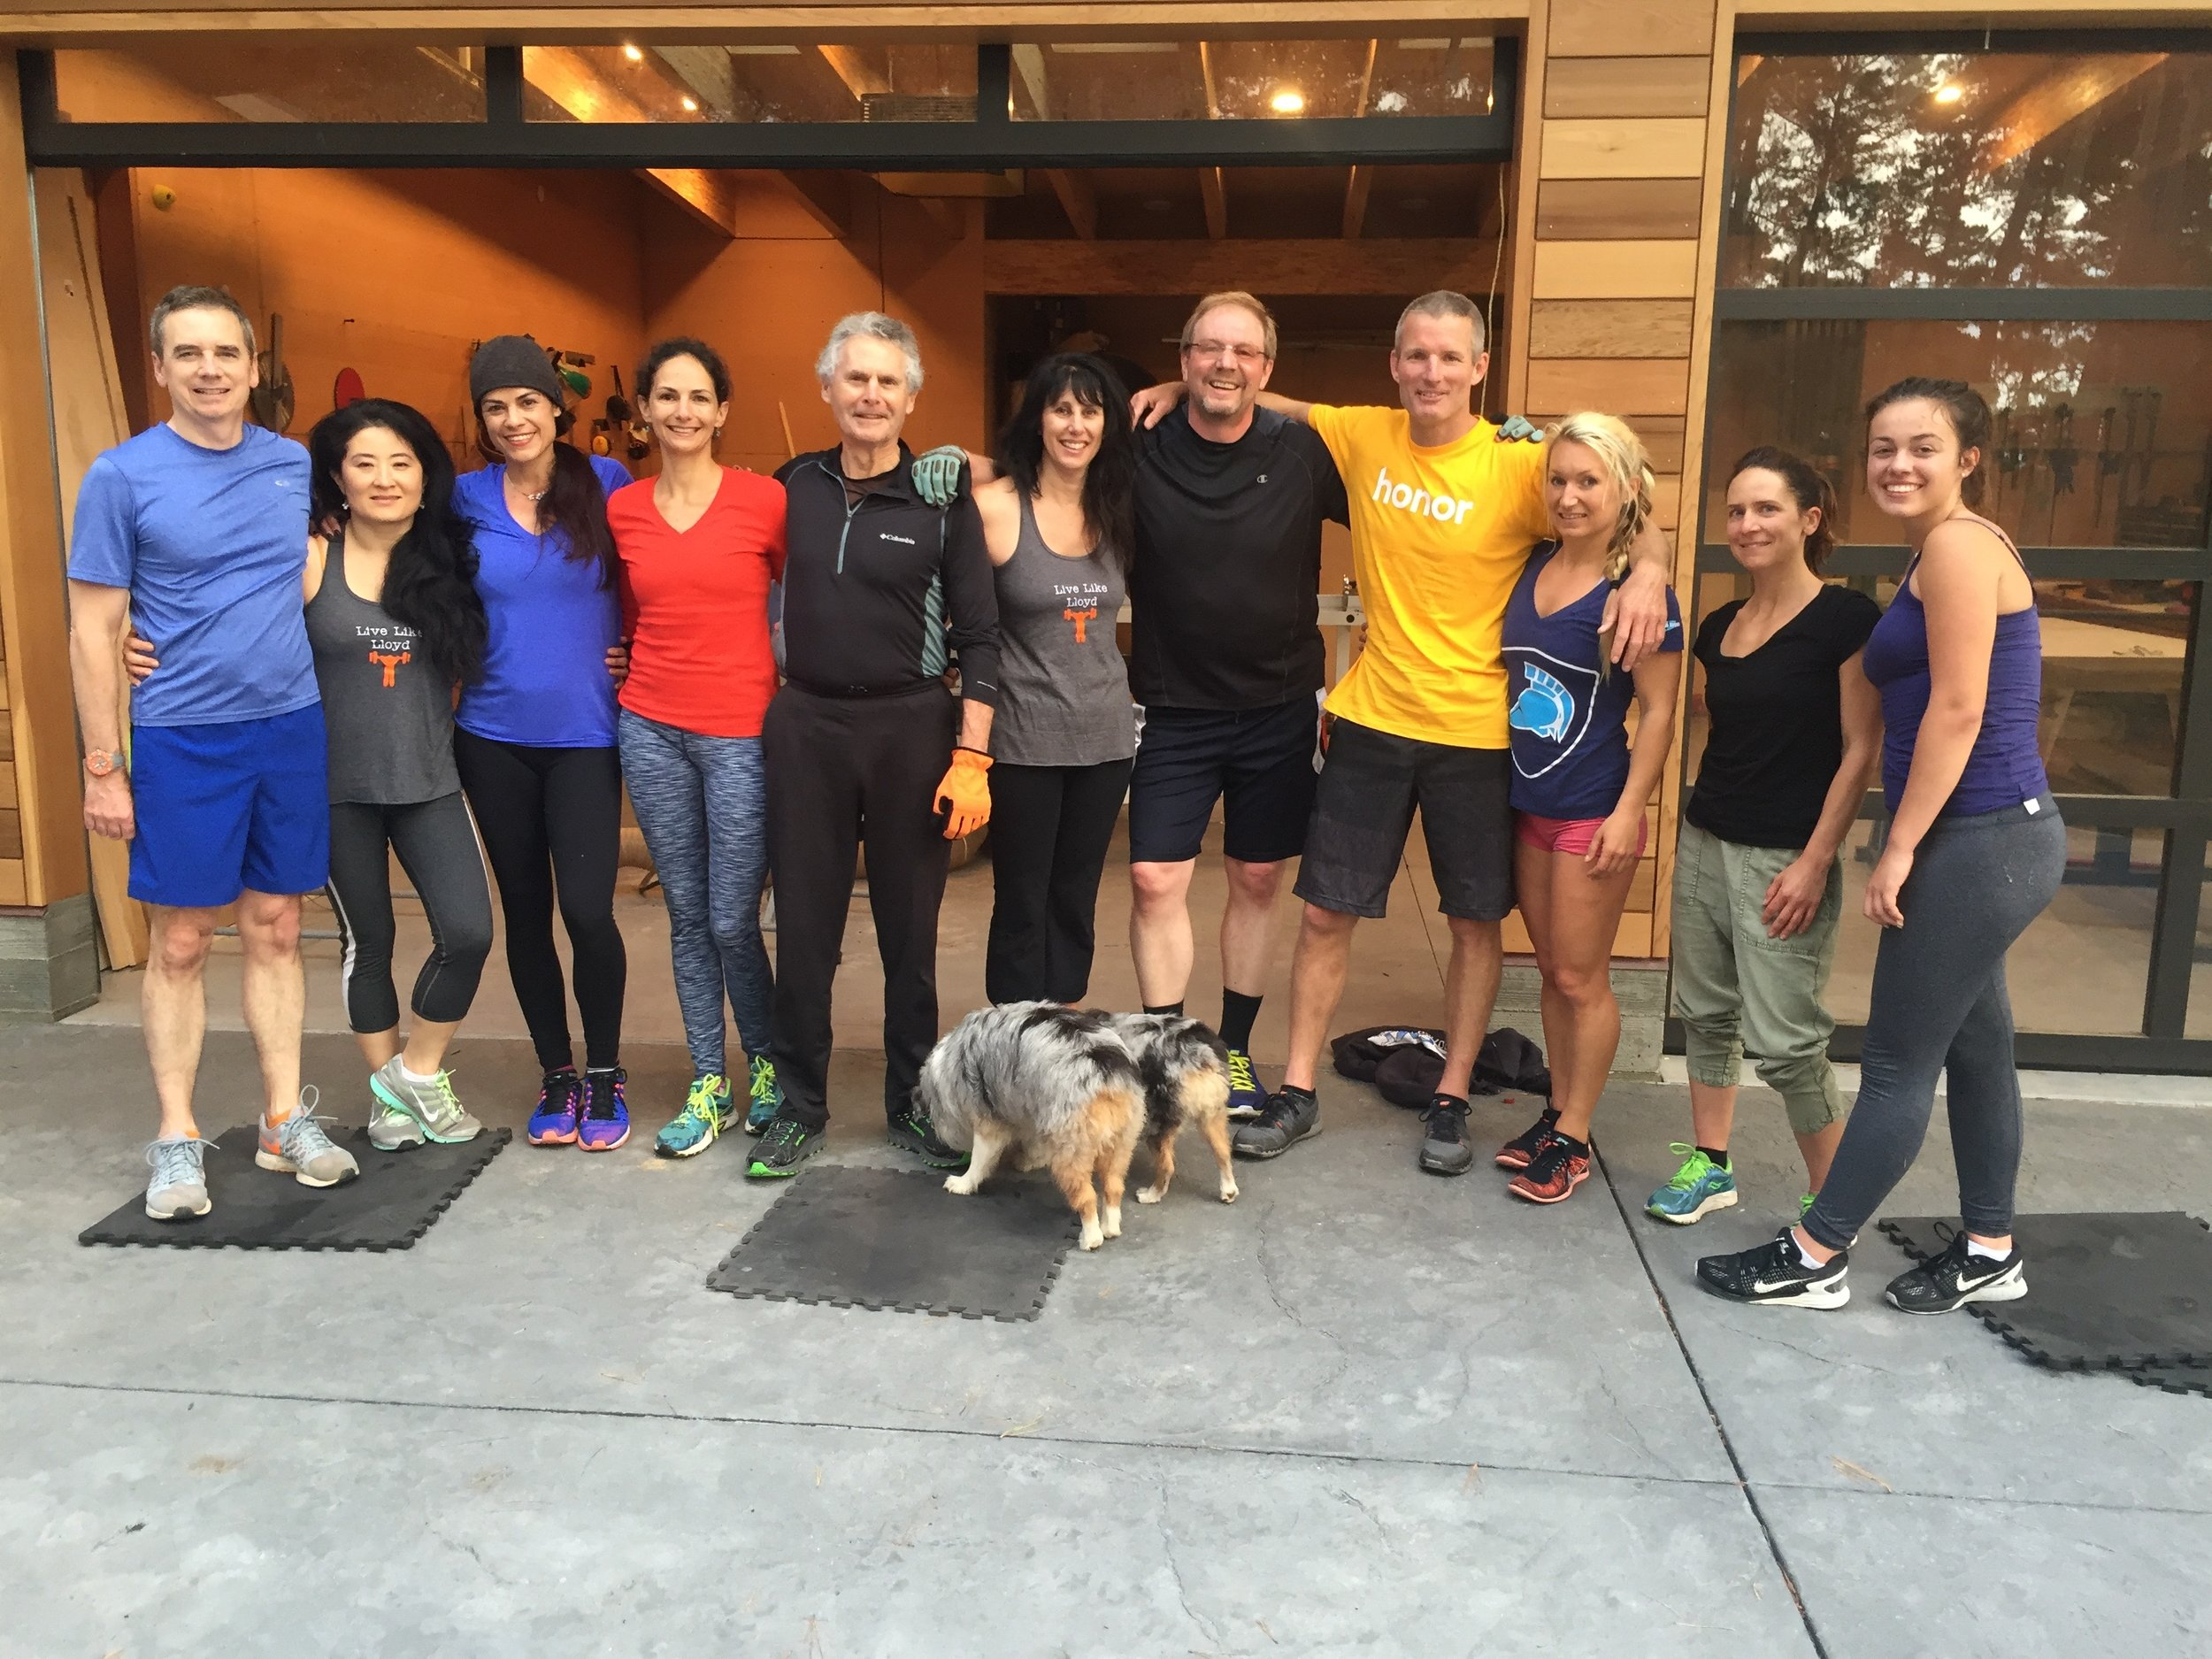 Our Tuesday Thrusday Crossfit clan in Carmel in front of our gym garage.